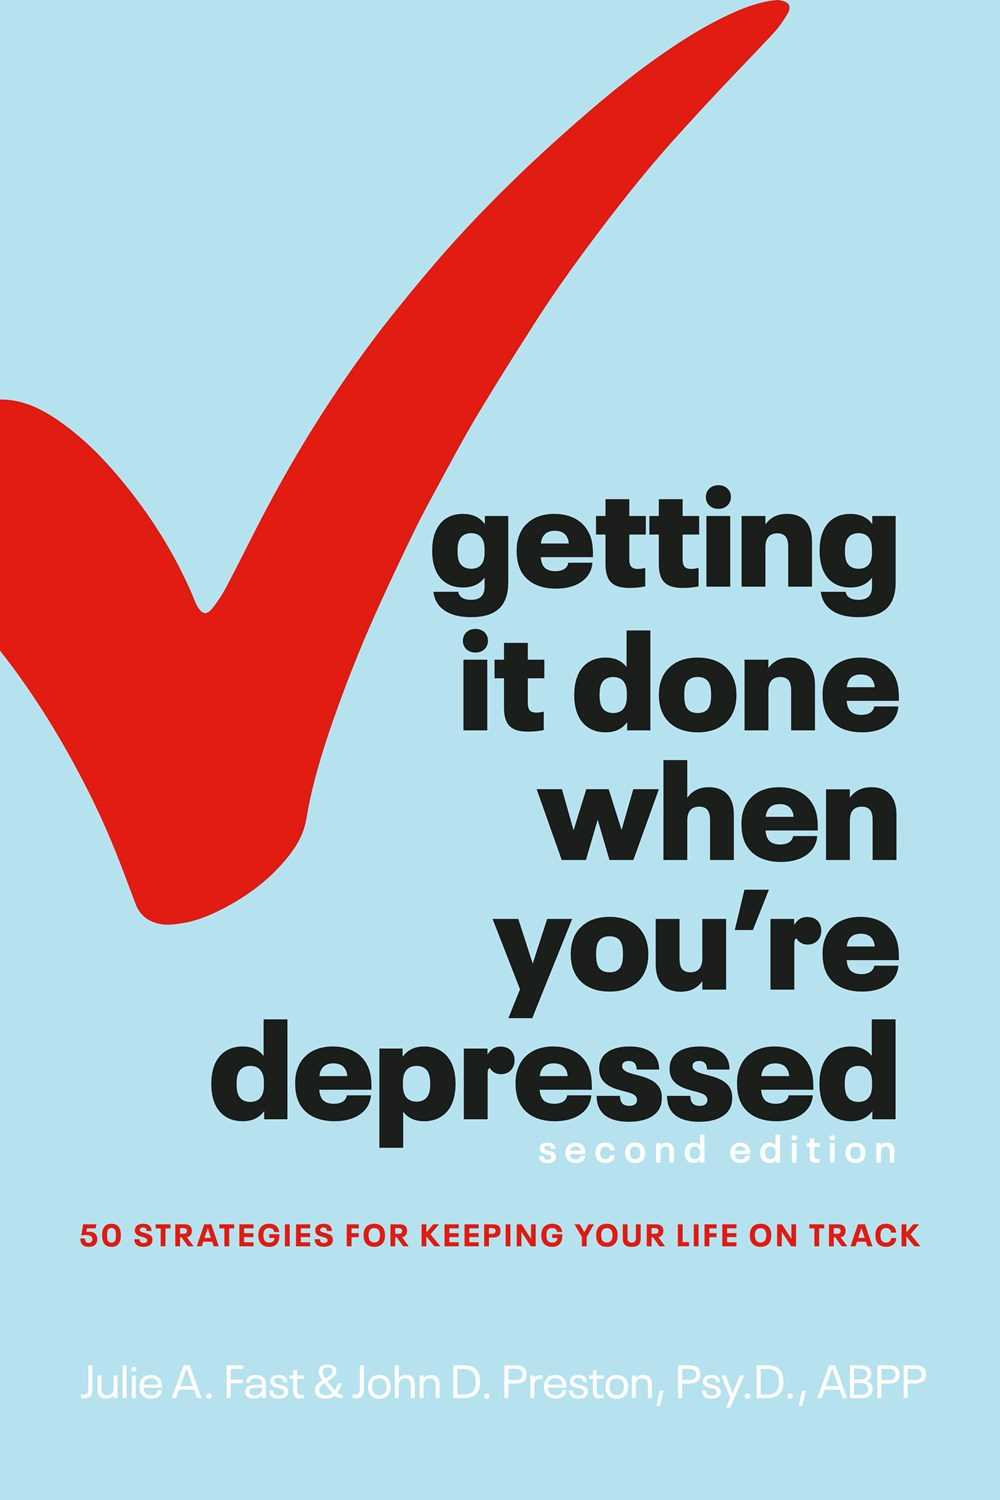 Getting it Done When You're Depressed (2nd Edition)